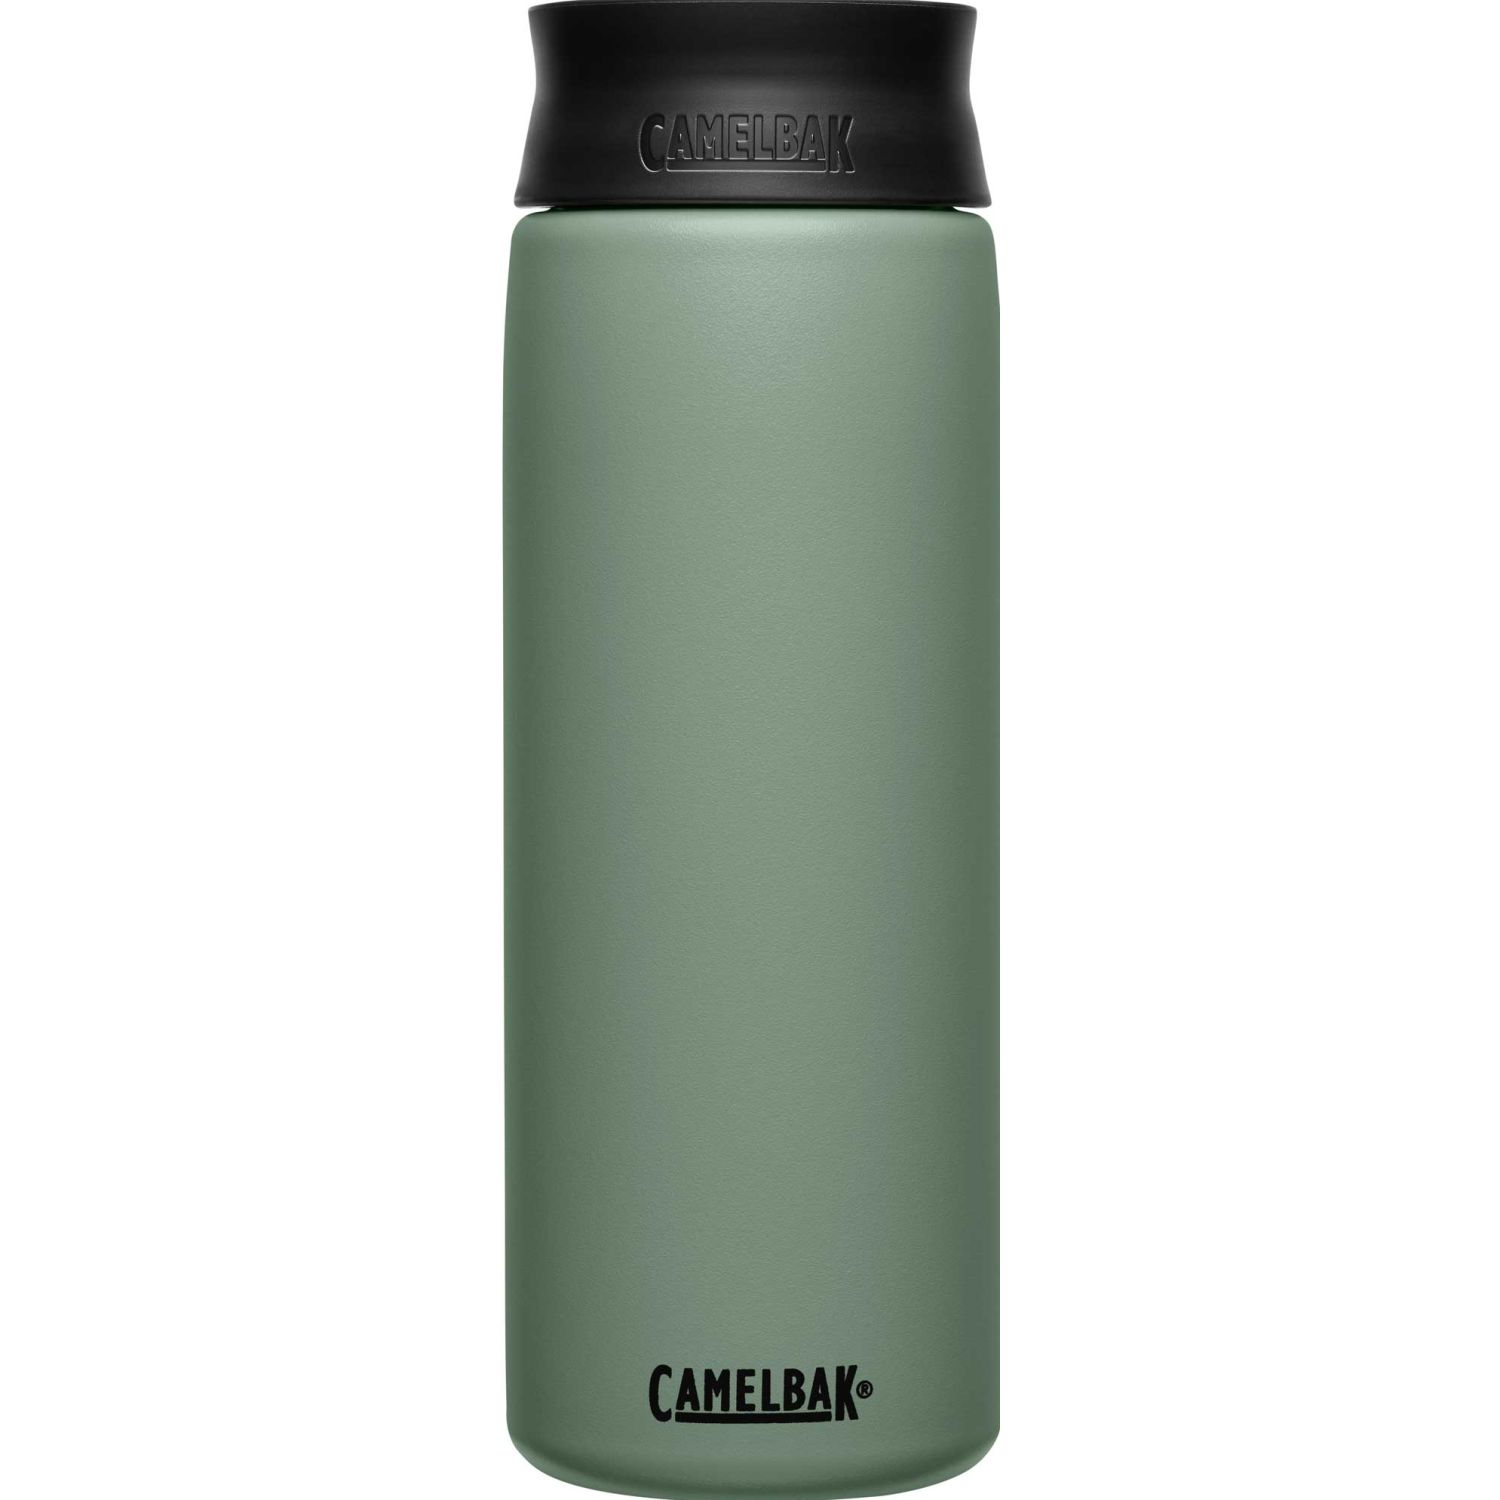 CAMELBAK hot cap vacuum stainless 20oz Verde Botellas de agua